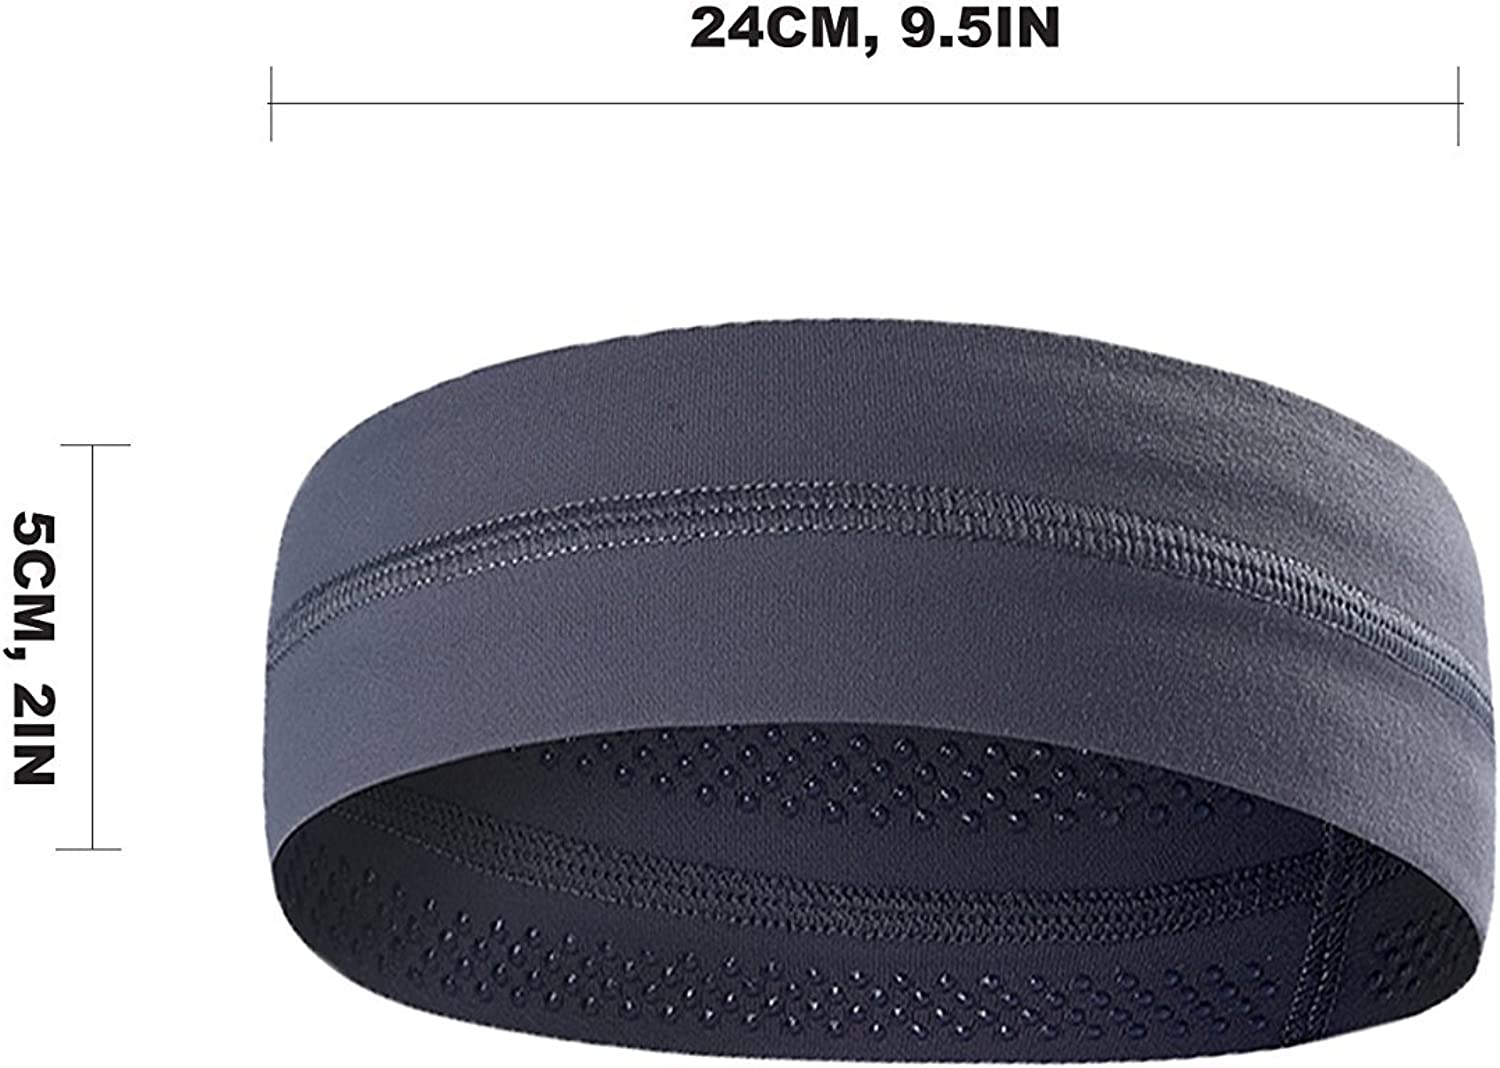 grey,black,navy 3PACK Lightweight Sport Headband//Non-slip Sweat Band Stretchy Bandana Headwear Fashion Elastic Hair Band for Women Men Teens Toddlers Girls Best for Running Cycling Hot Yoga and Athletic Workouts